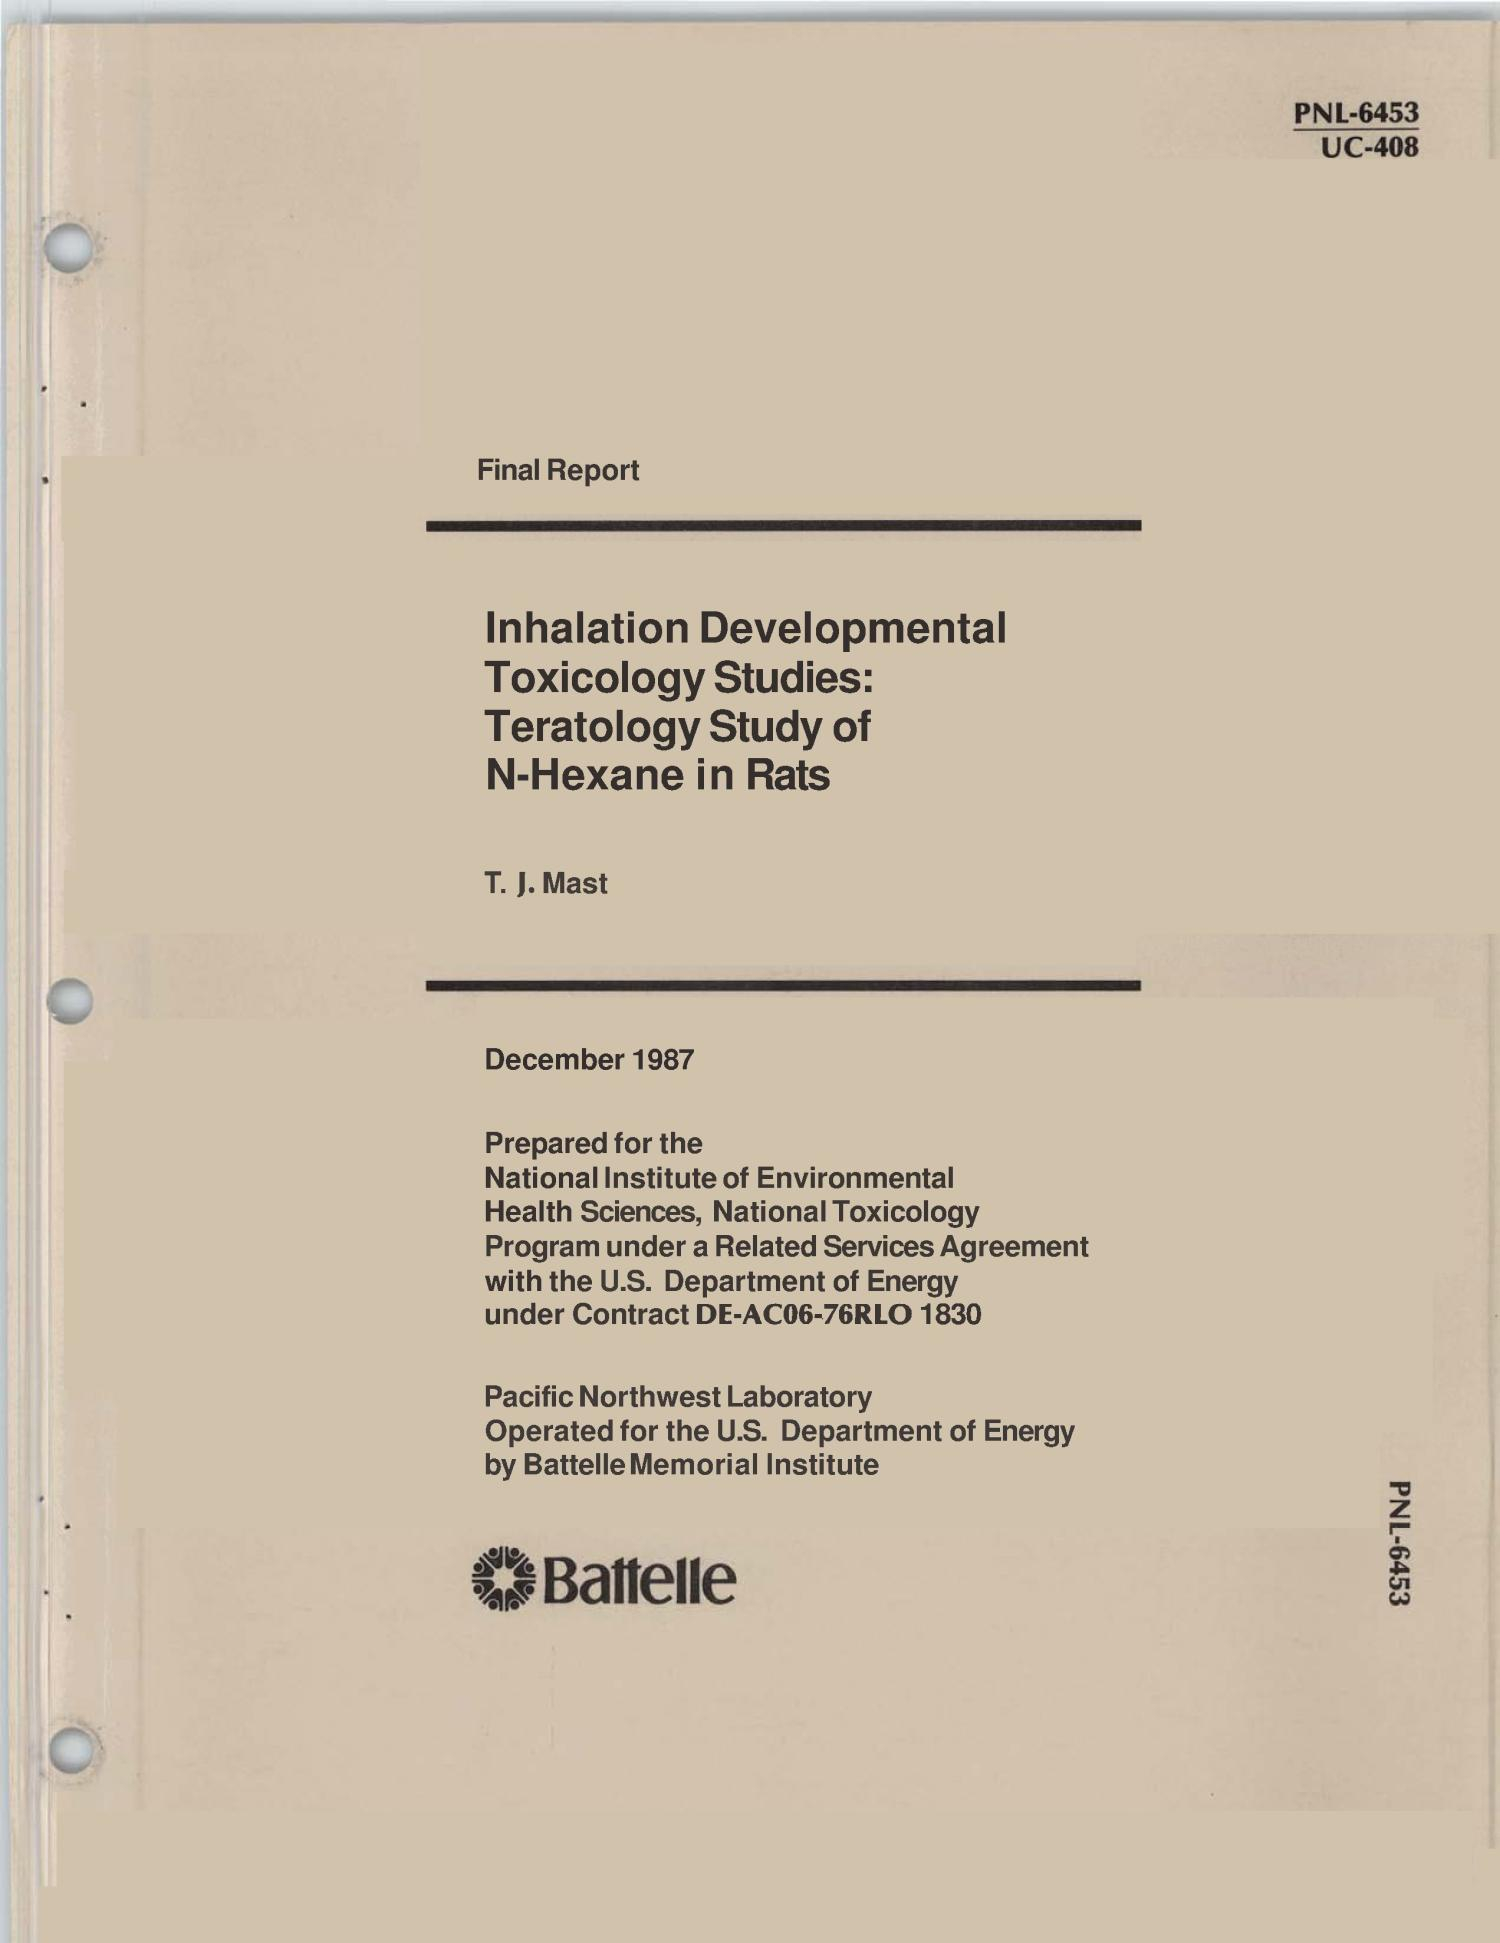 Inhalation developmental toxicology studies: Teratology study of n-hexane in rats: Final report                                                                                                      [Sequence #]: 1 of 222